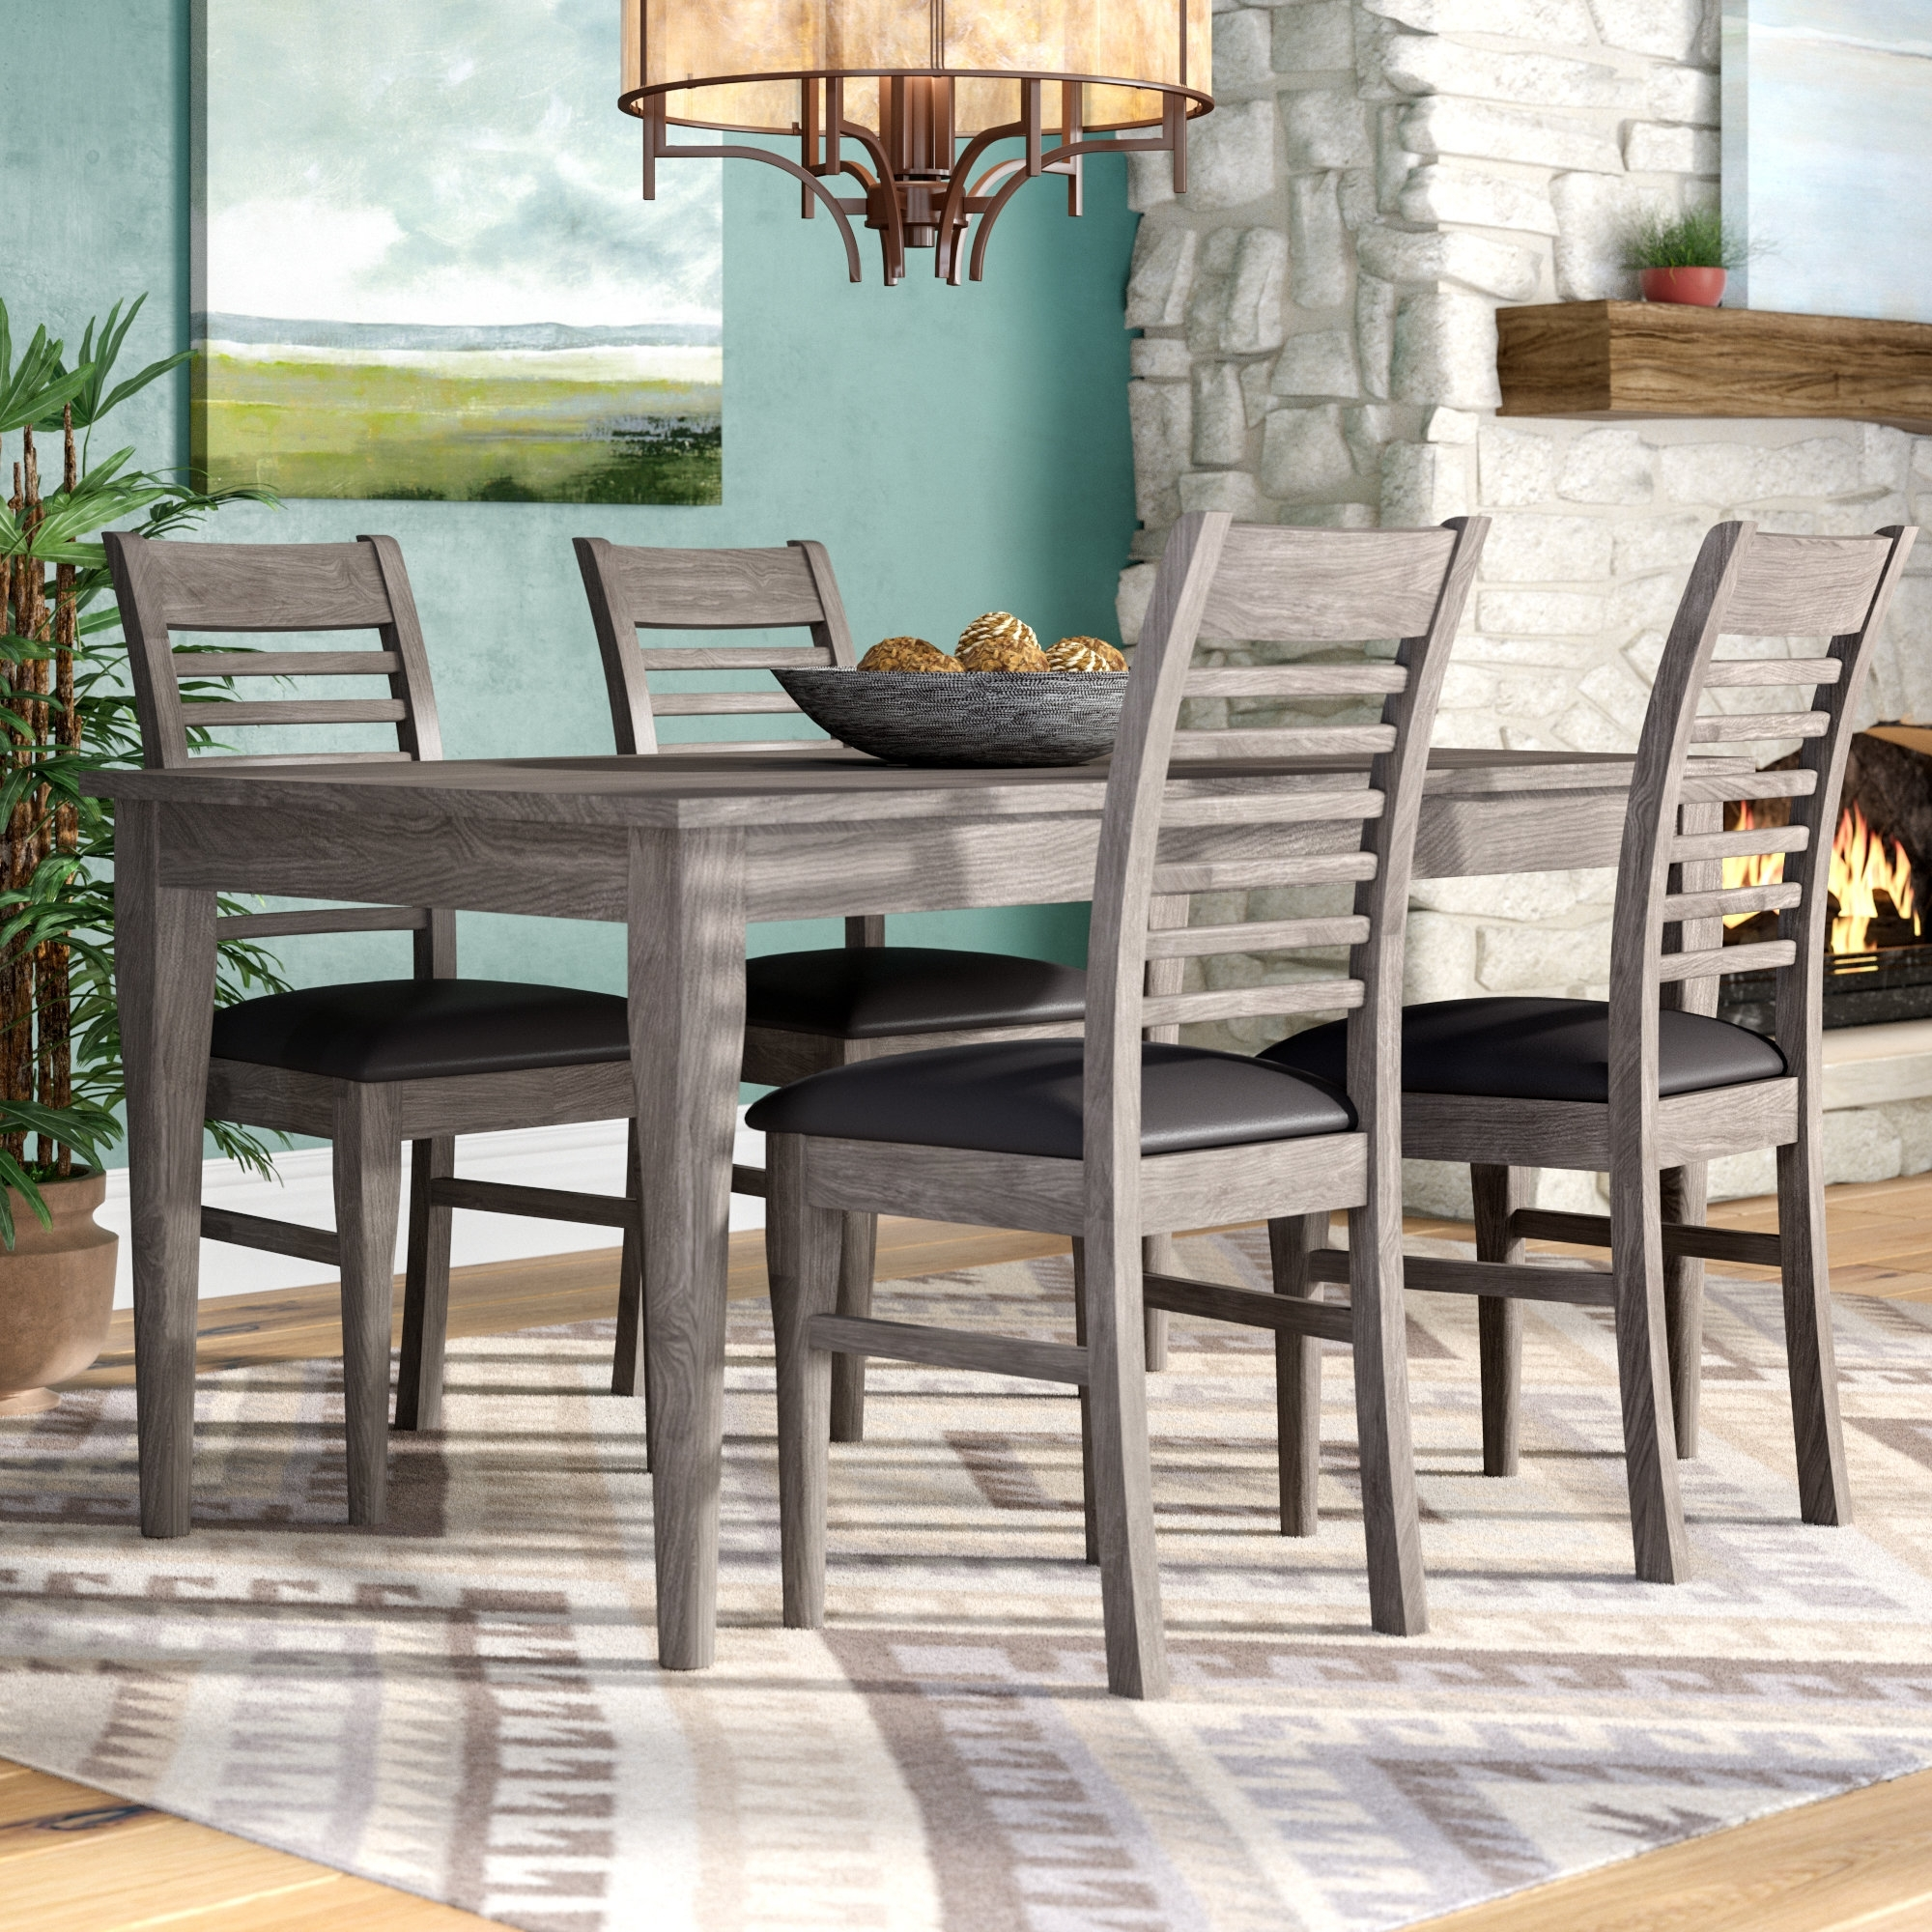 Loon Peak Alguno 5 Piece Dining Set & Reviews | Wayfair Within Most Current Cora 7 Piece Dining Sets (Image 15 of 20)